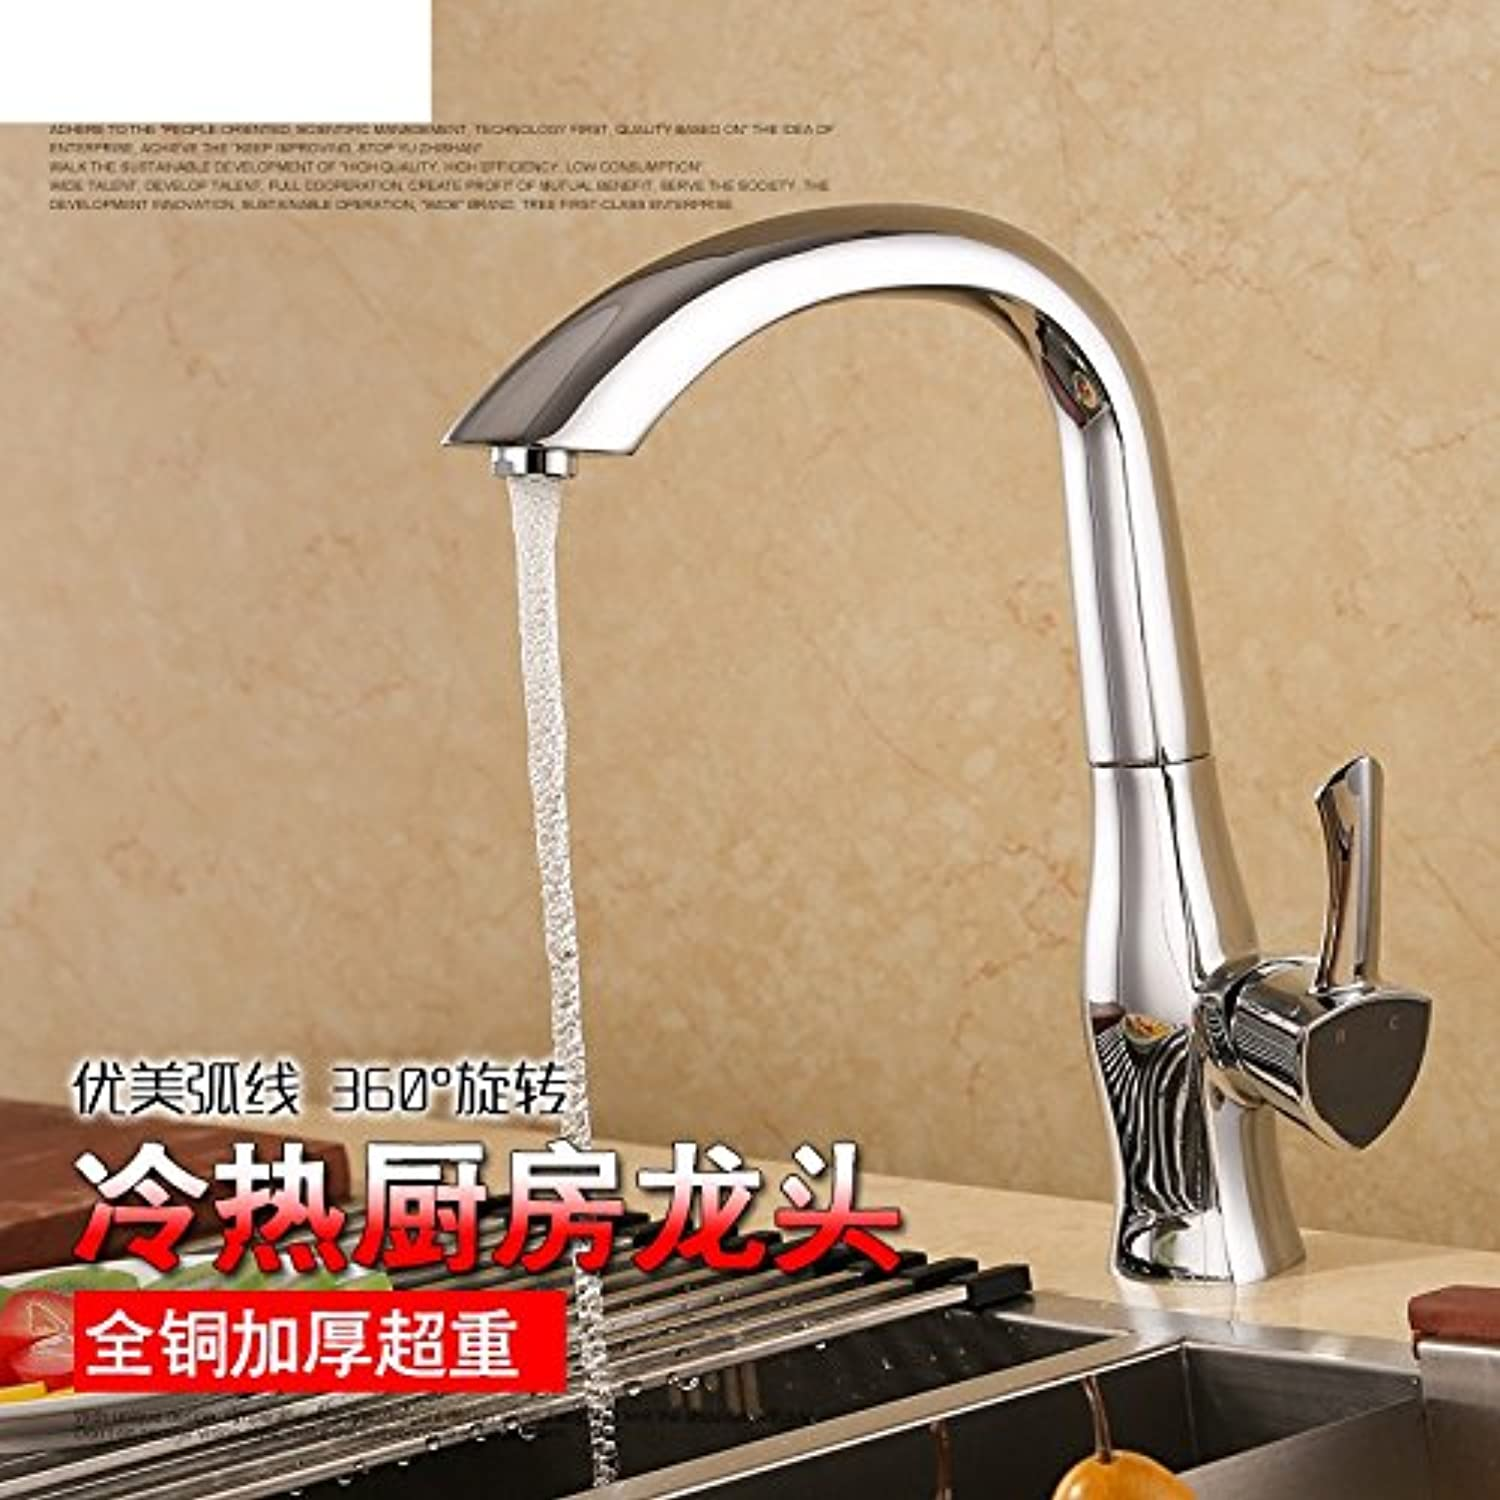 Gyps Faucet Basin Mixer Tap Waterfall Faucet Antique Bathroom The copper kitchen double temperature cold and hot 7 field to redate the water faucet Bathroom Tub Lever Faucet